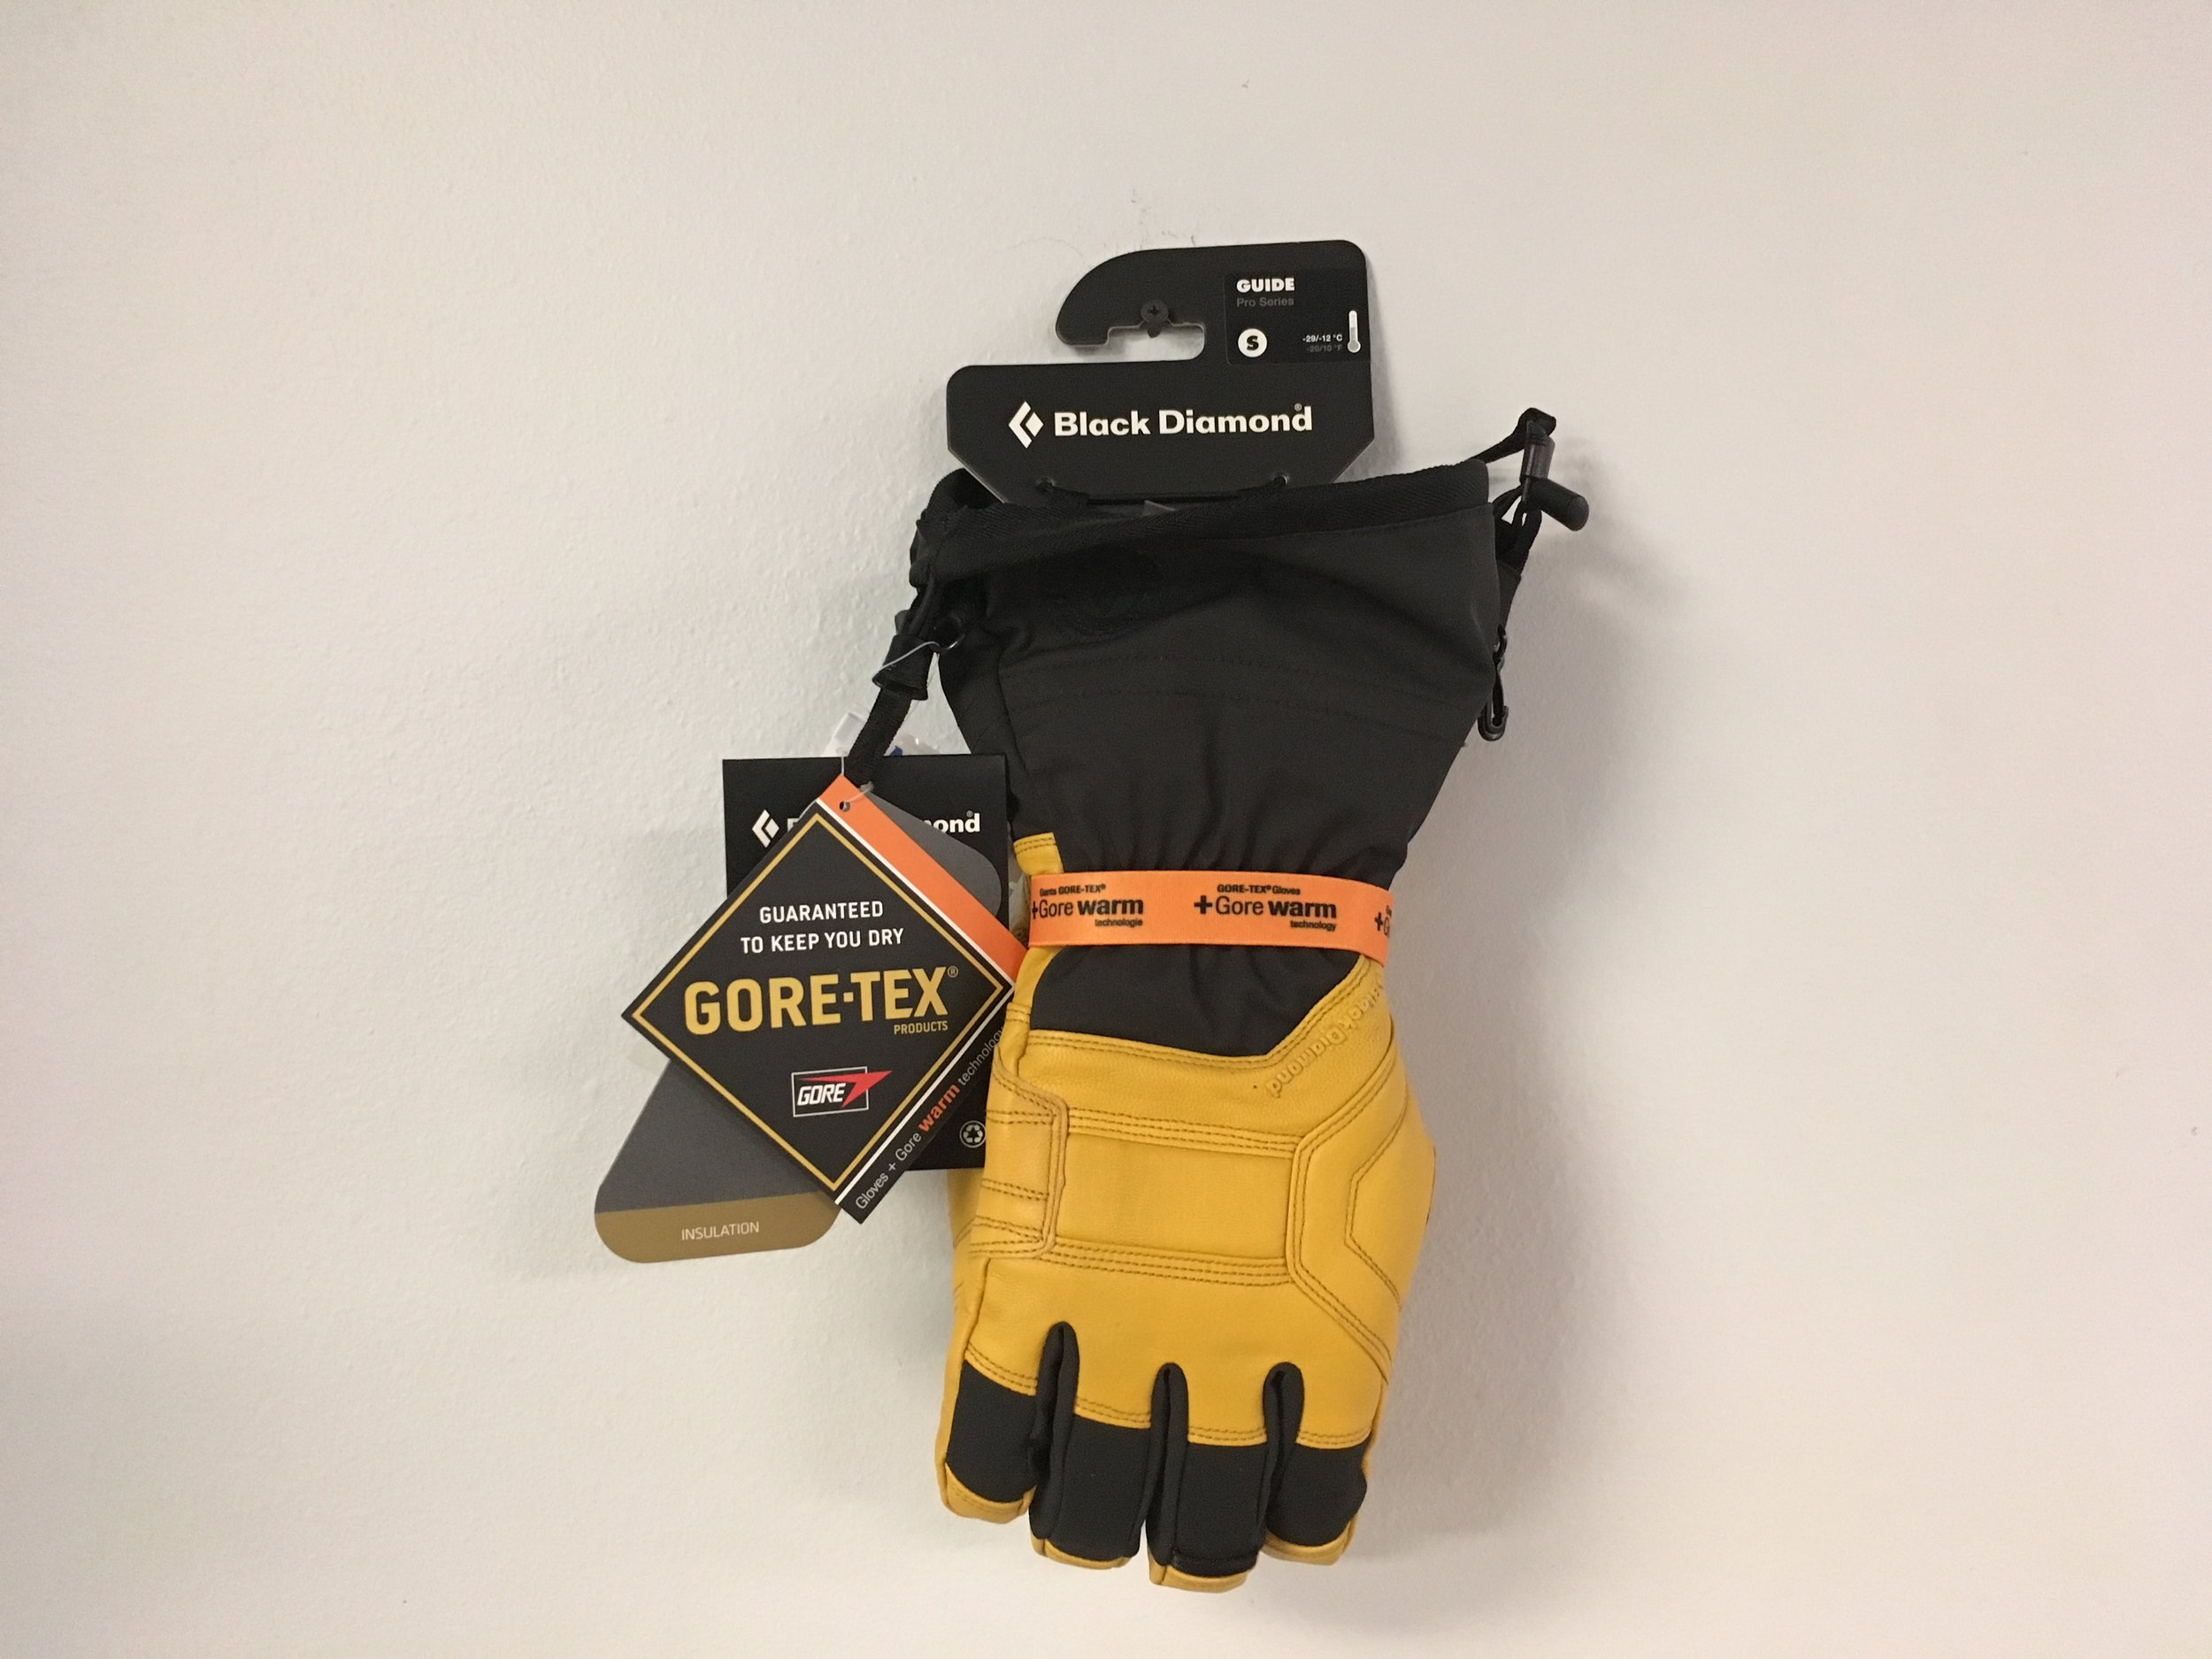 Get your Gore here! Keep those hands dry in this wet weather with BD's Guide Gore-Tex Glove. Retail is listed at $160 but we got you covered at $84. The size is a men's small.